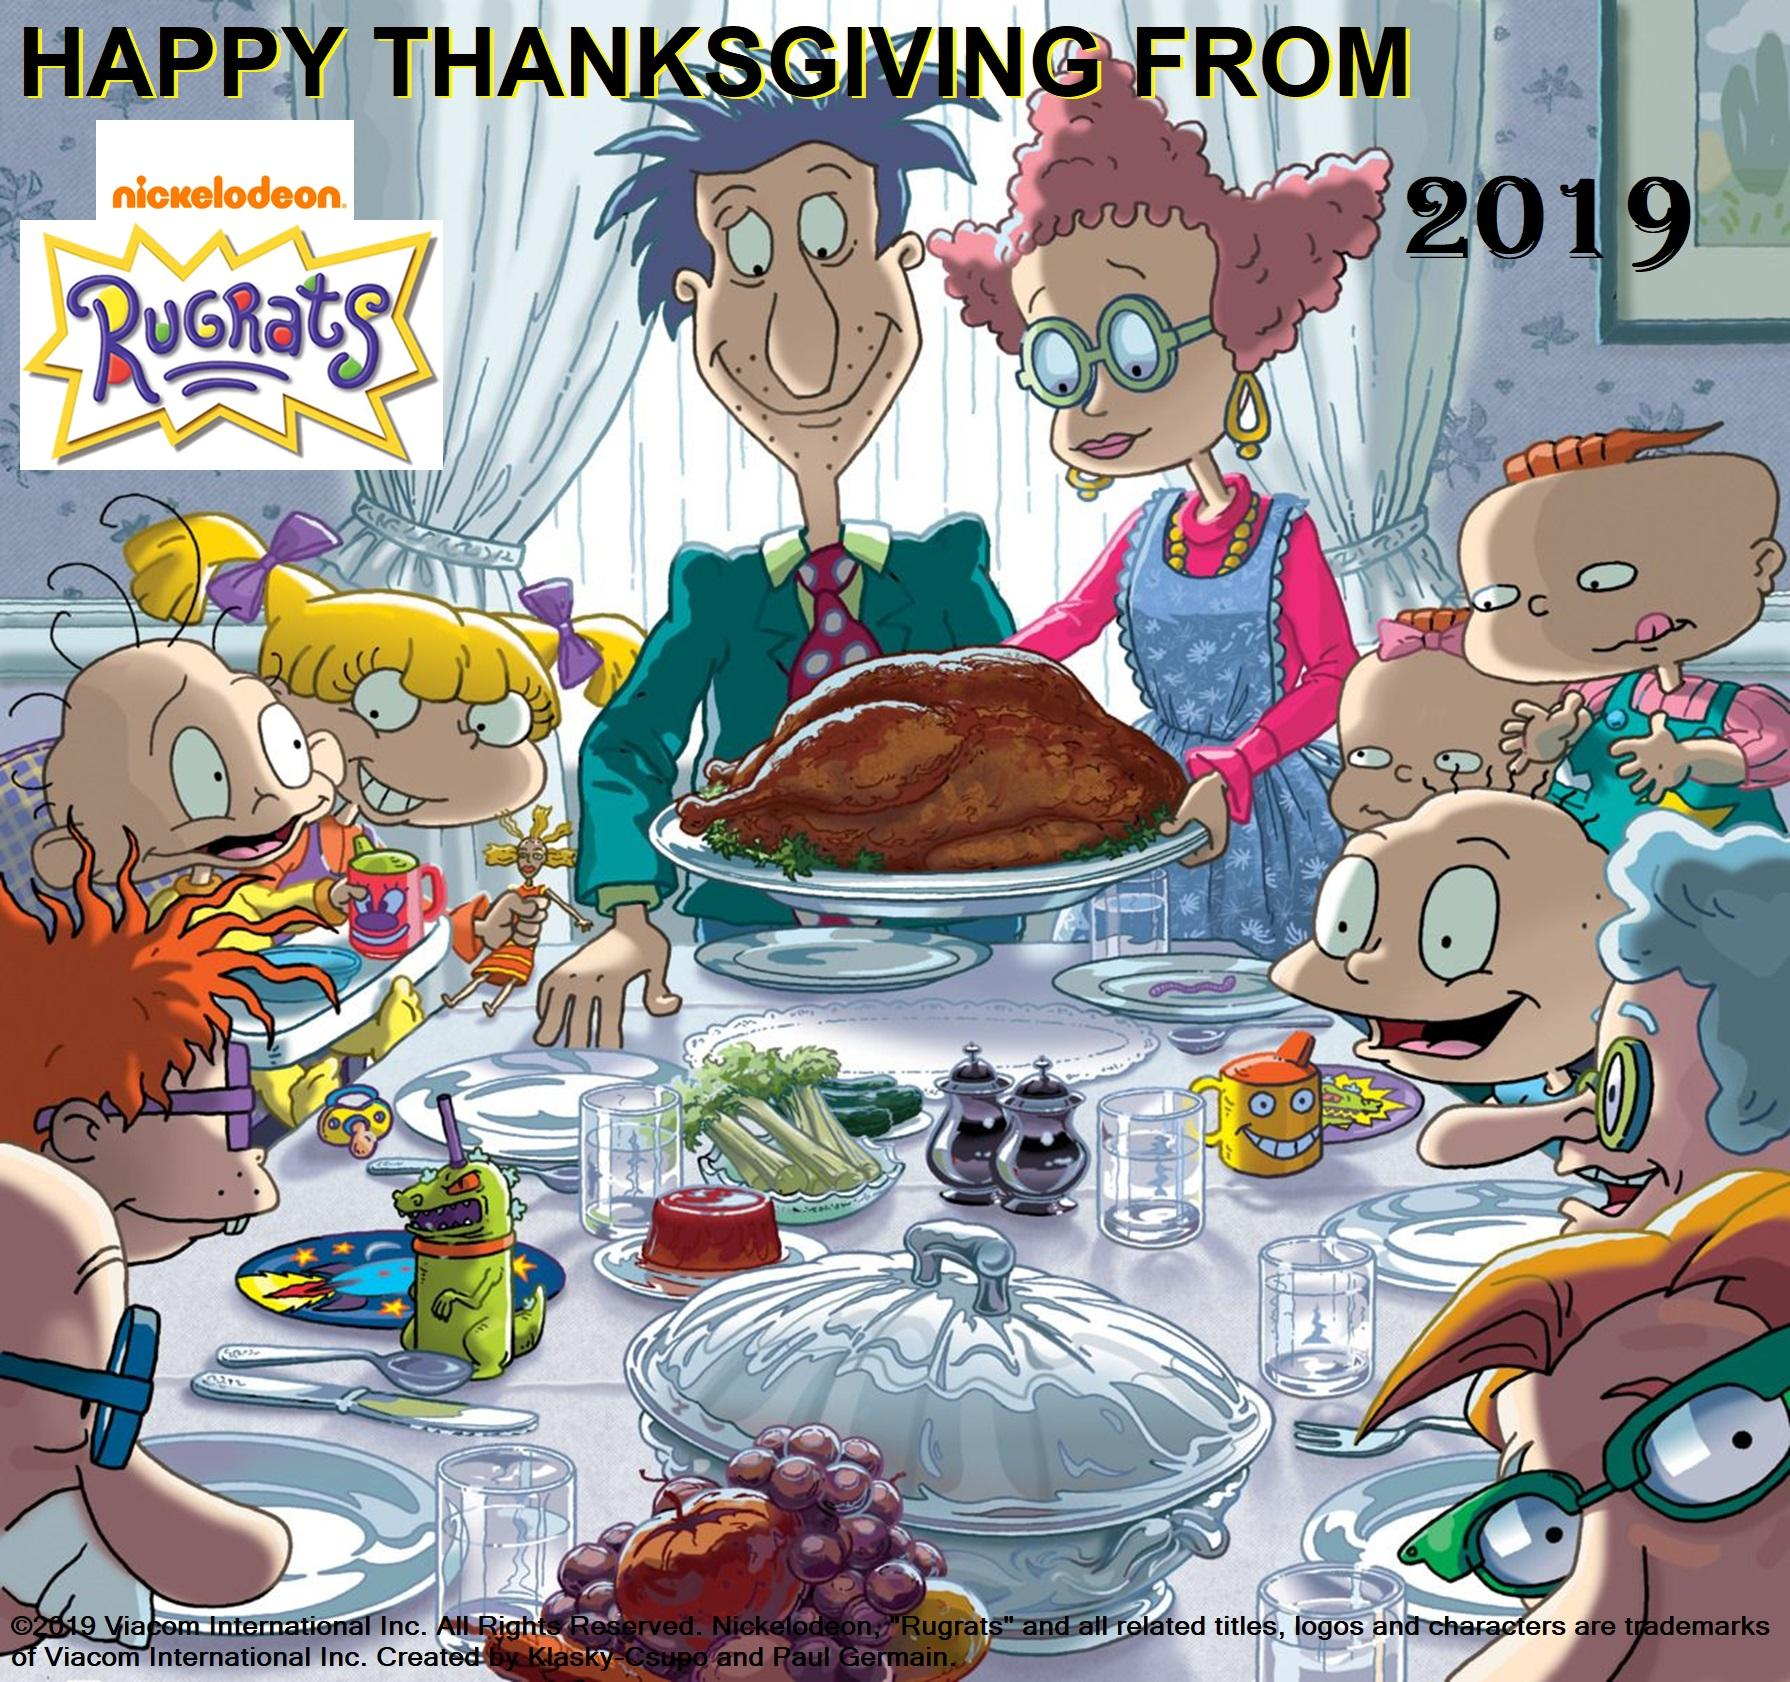 Nickelodeon's Rugrats Happy Thanksgiving 2019 Wallpapers